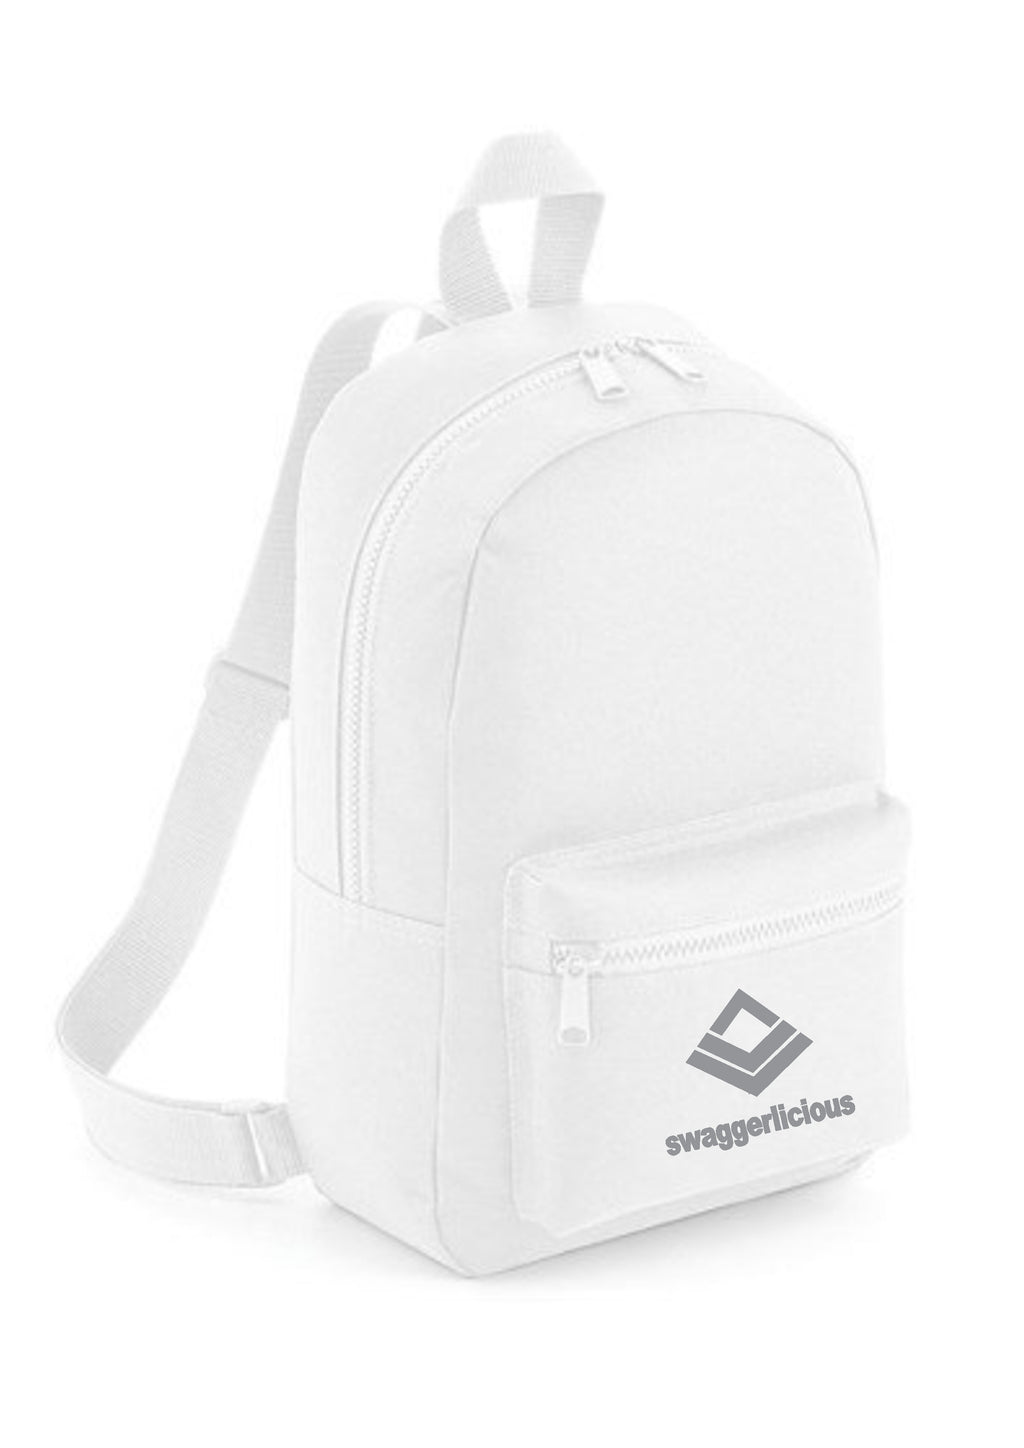 Swaggerlicious Classic White Mini Backpack with Silver Logo - swaggerlicious-clothing.com